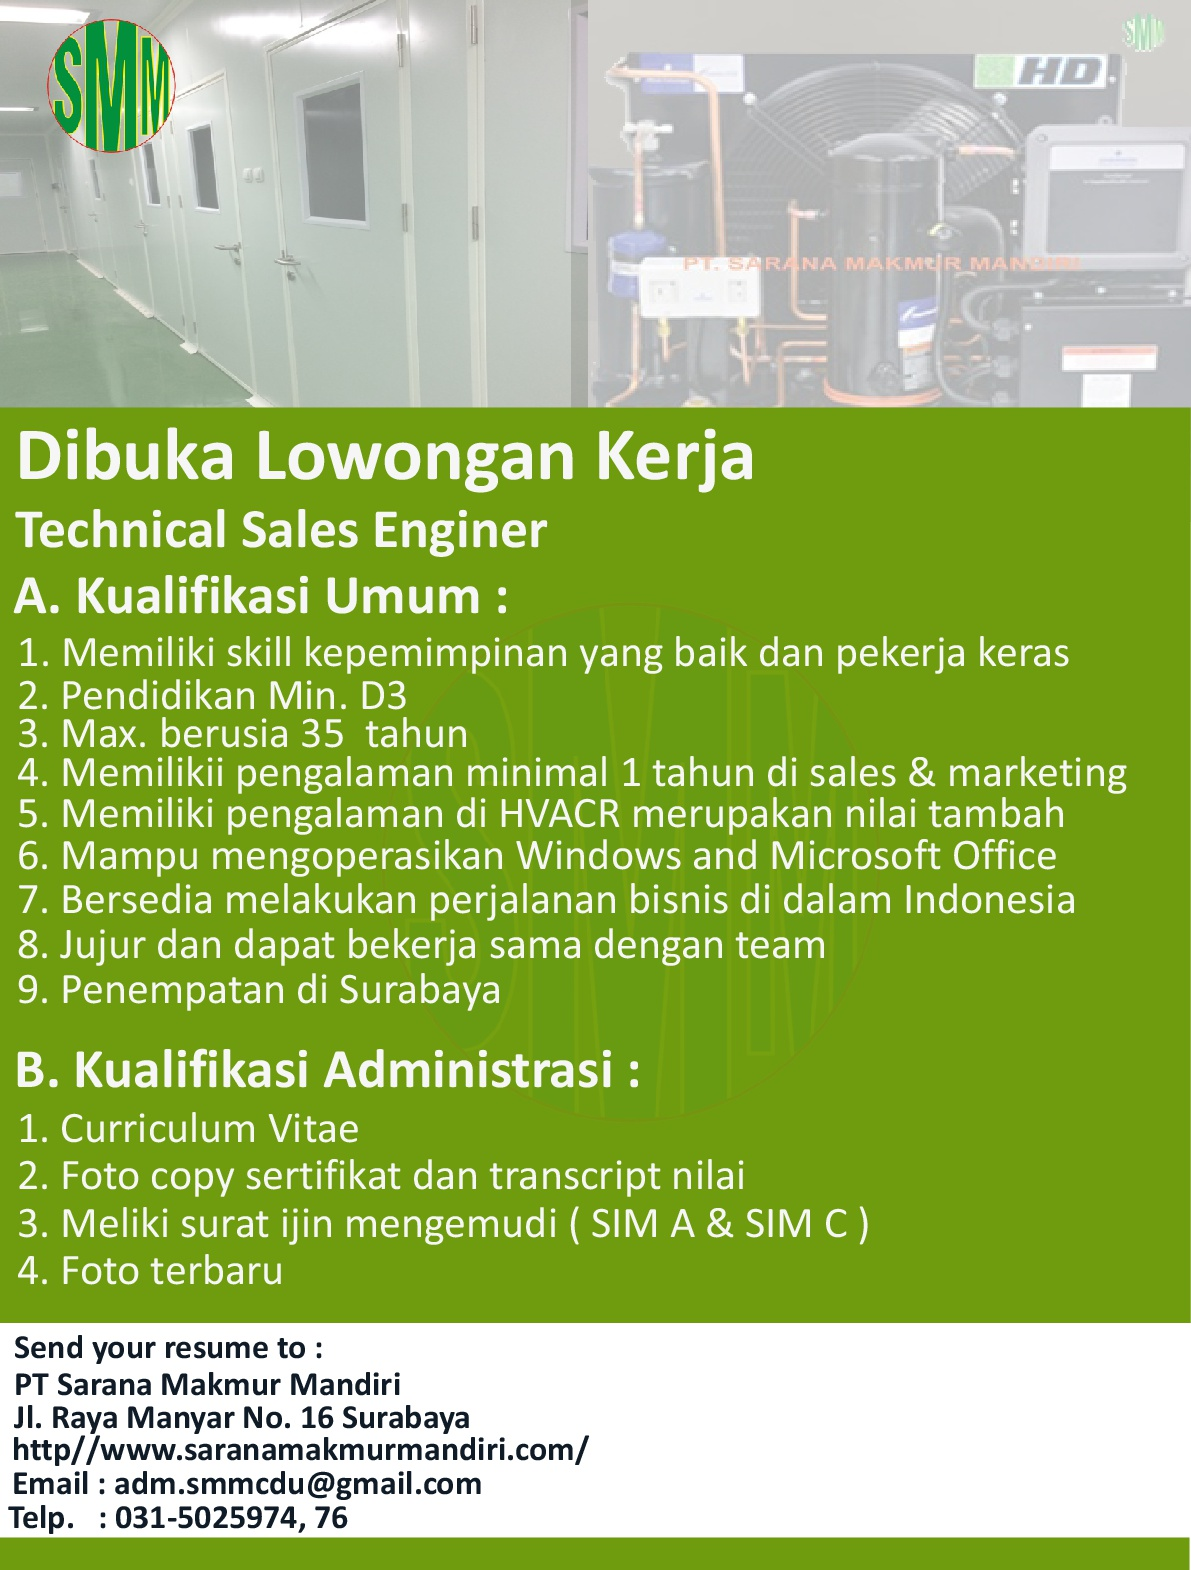 Technical Sales Enginer